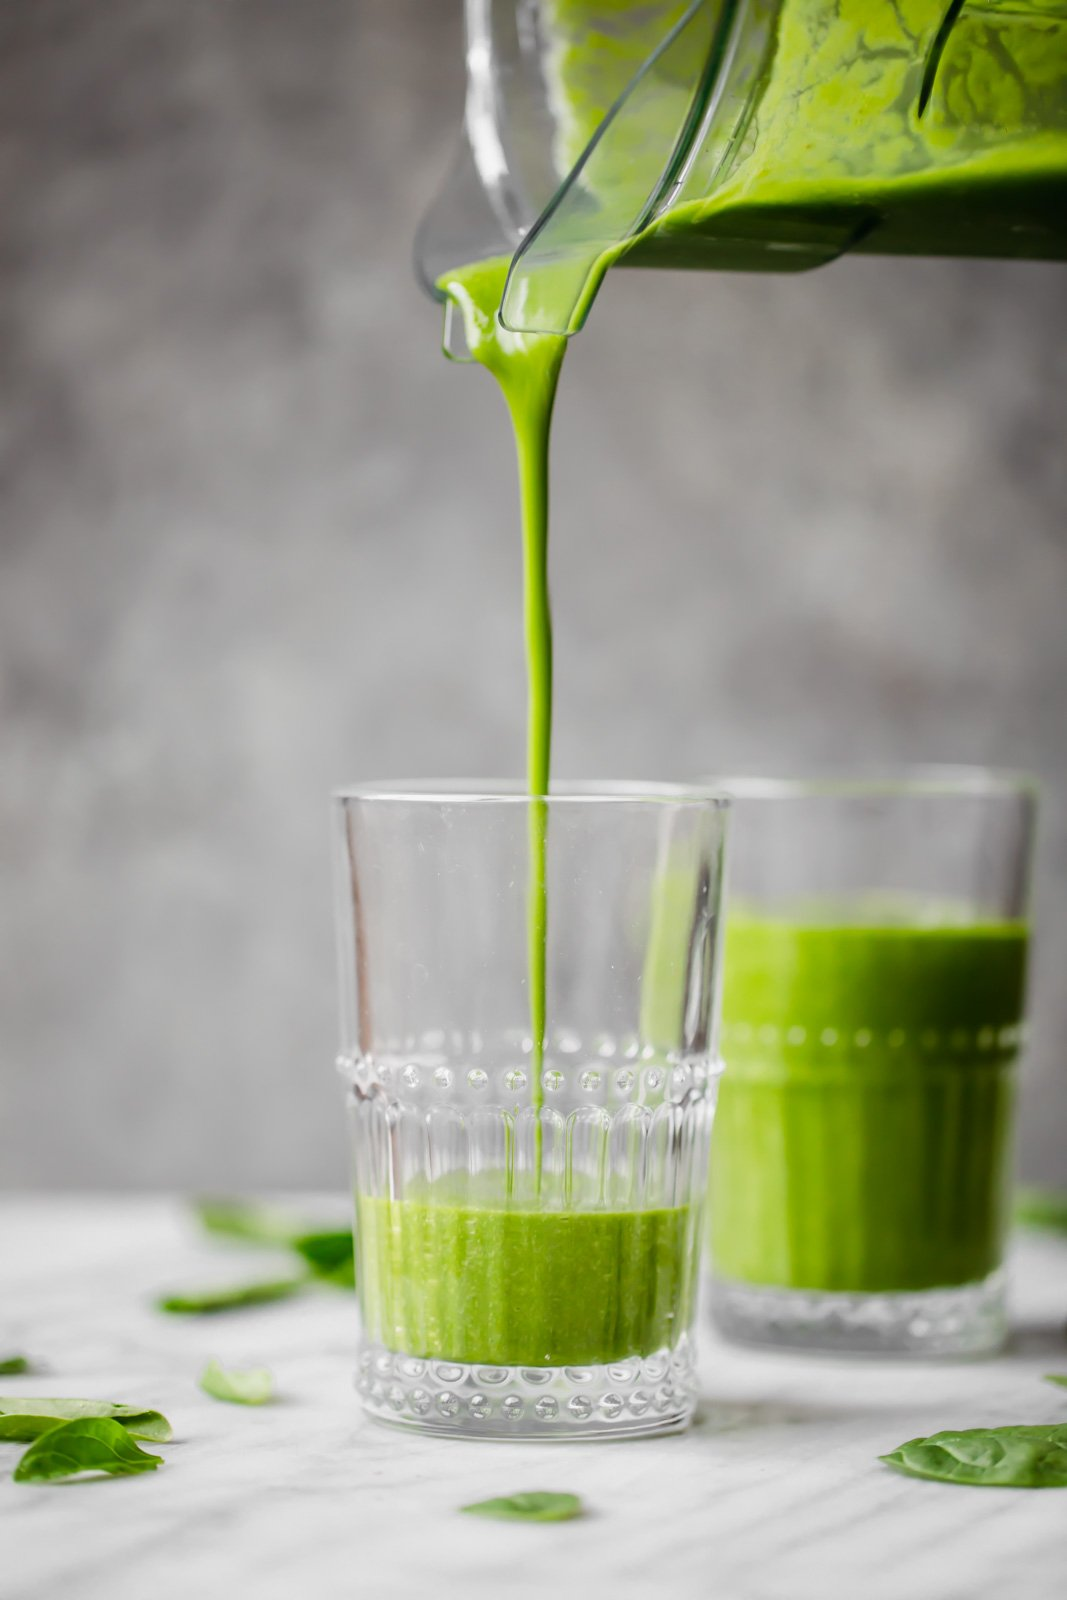 top 25 favorite recipes: wellness smoothie pouring into a glass